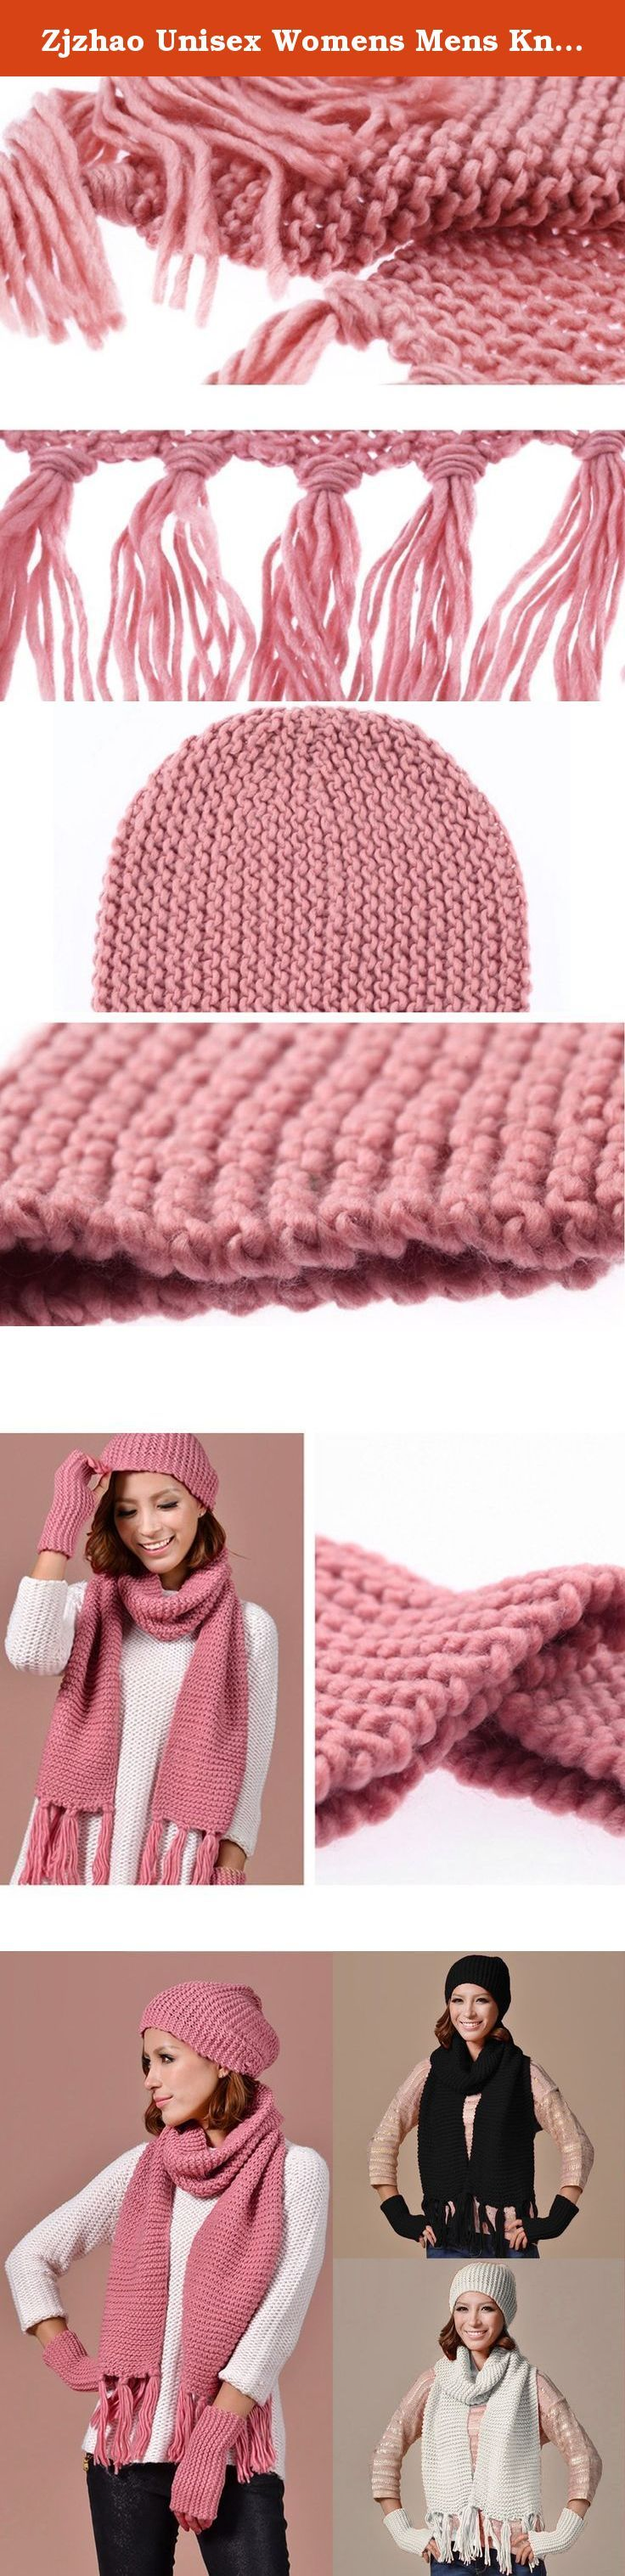 Zjzhao Unisex Womens Mens Knitted Ski Beanie Cap Warm Hat Scarf and Gloves Winter Set (Pink). 100% brand new and high quality Features: Thicken Knit, keep warm in winter Newly fashion design , warm and comfortable Perfect Christmas / New Year gift, birthday present for women lady girls It's Fashion, Creative, is a very useful accessory brighten up your look, also as a gift. Specification: Material: Knit, Cotton Blend Gender: Women/Young Girl Scarf Size: 151 x 29cm (Length x Width) Gloves...